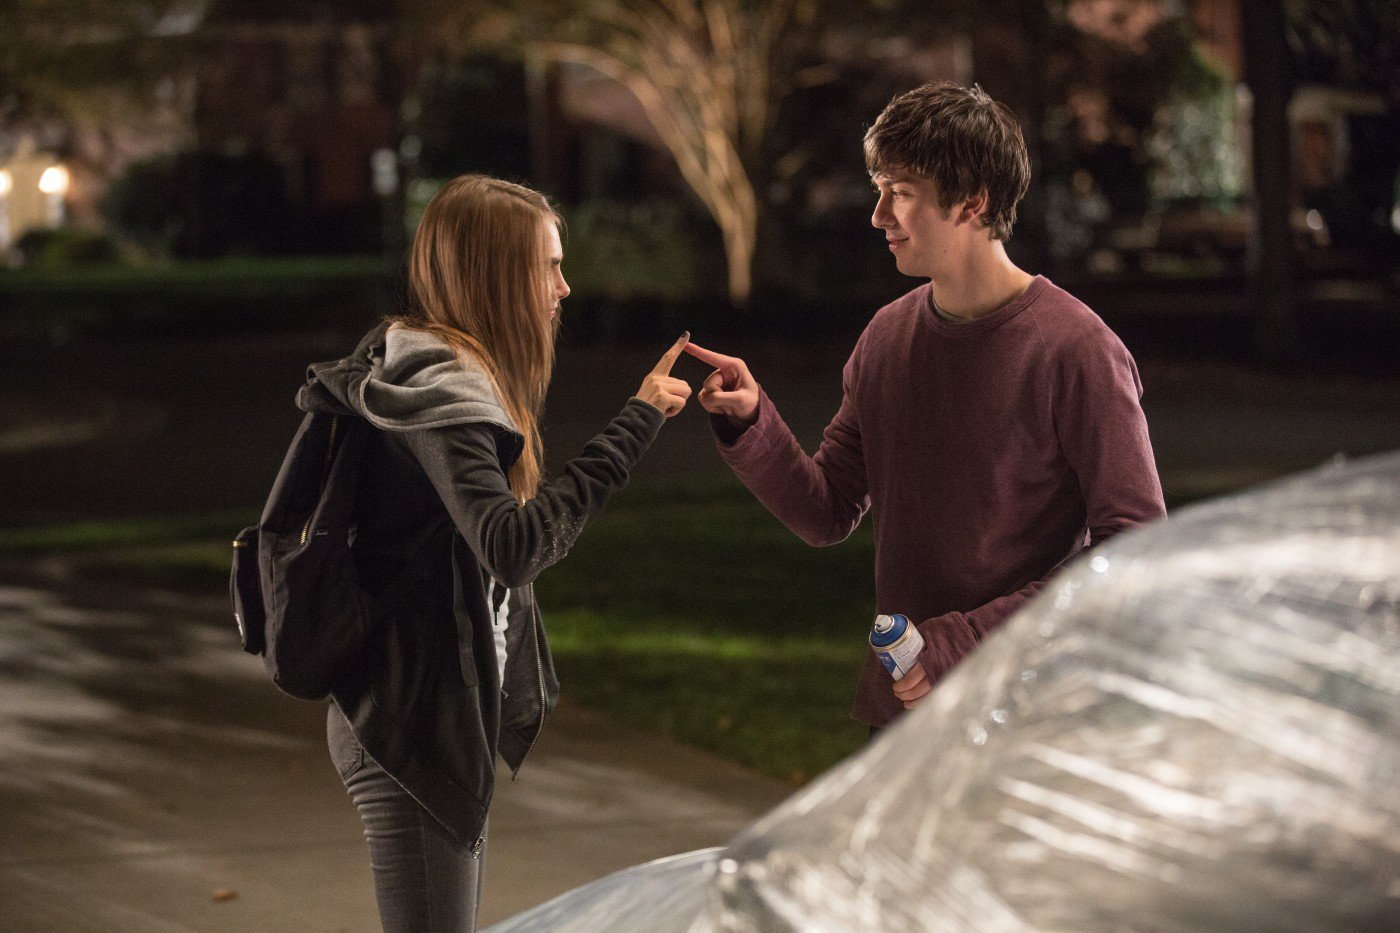 paper towns part 1 strings : what was the first thing margo said when she snuck into q's room, how many problems did margo said she had to deal with that night, what 3 mainly thi.